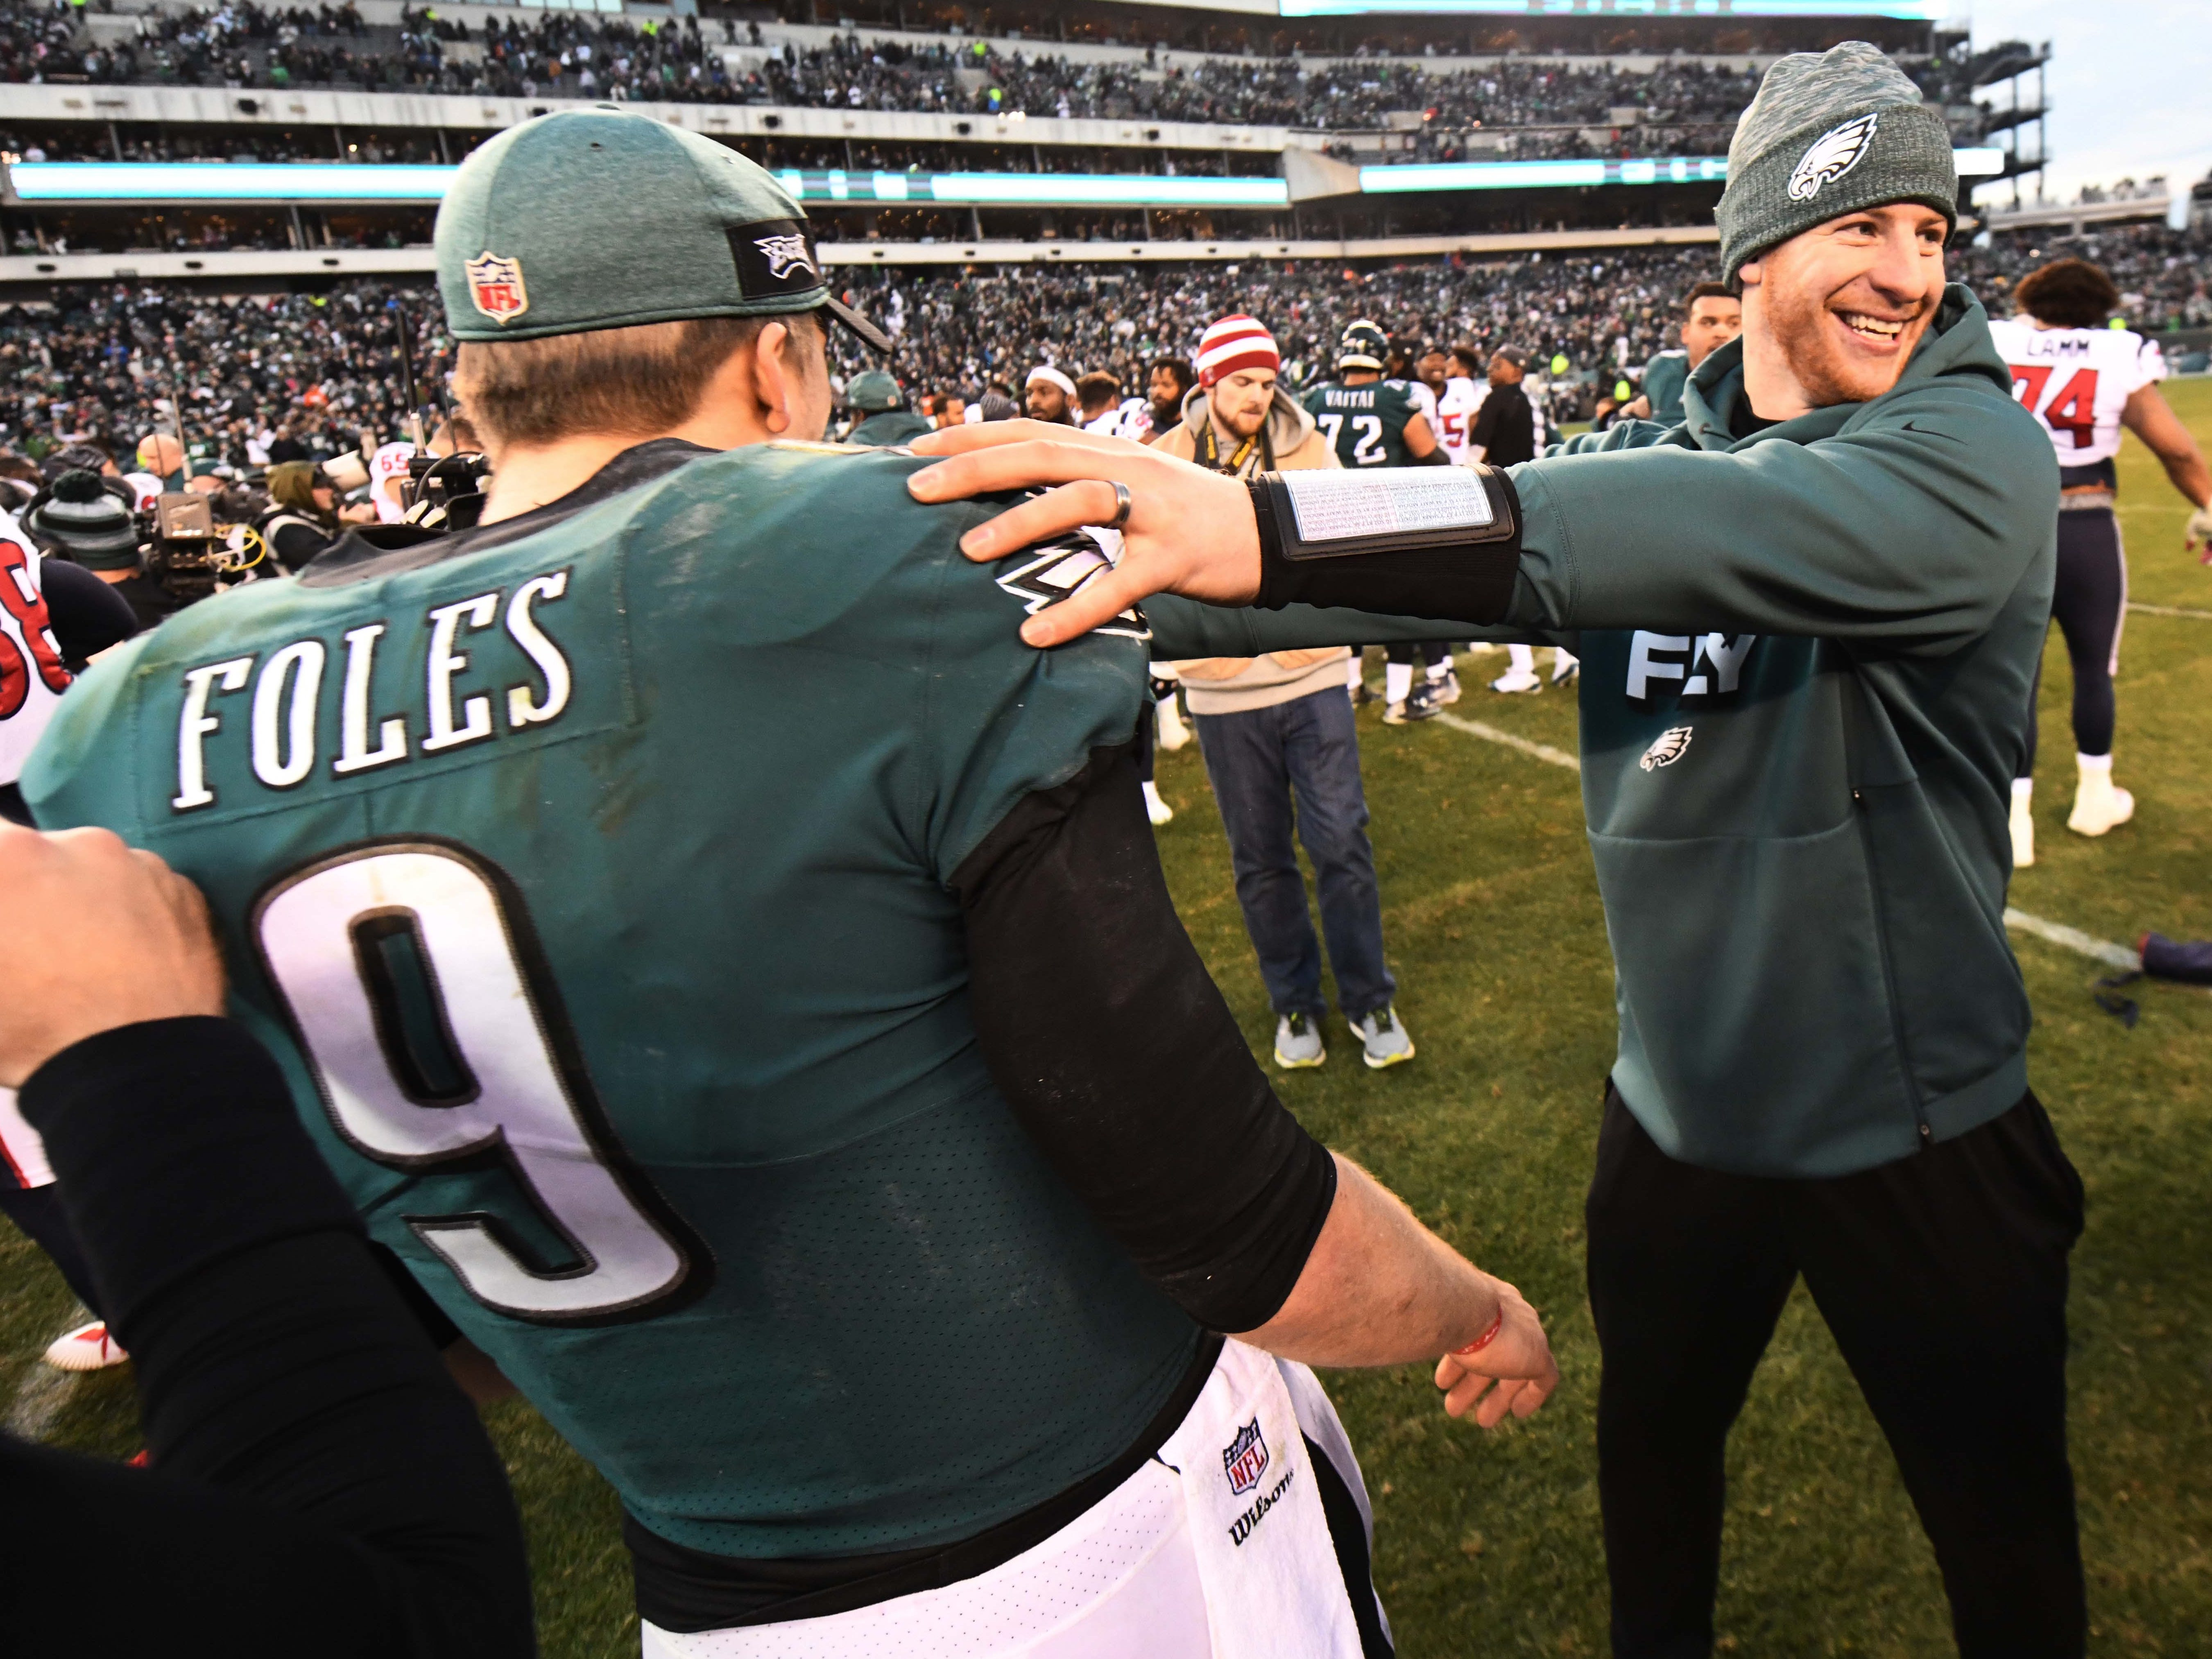 9. Eagles (12): Will they be better or not with Carson Wentz at controls for playoff run? What will presumed trade of Nick Foles do for roster enhancement?